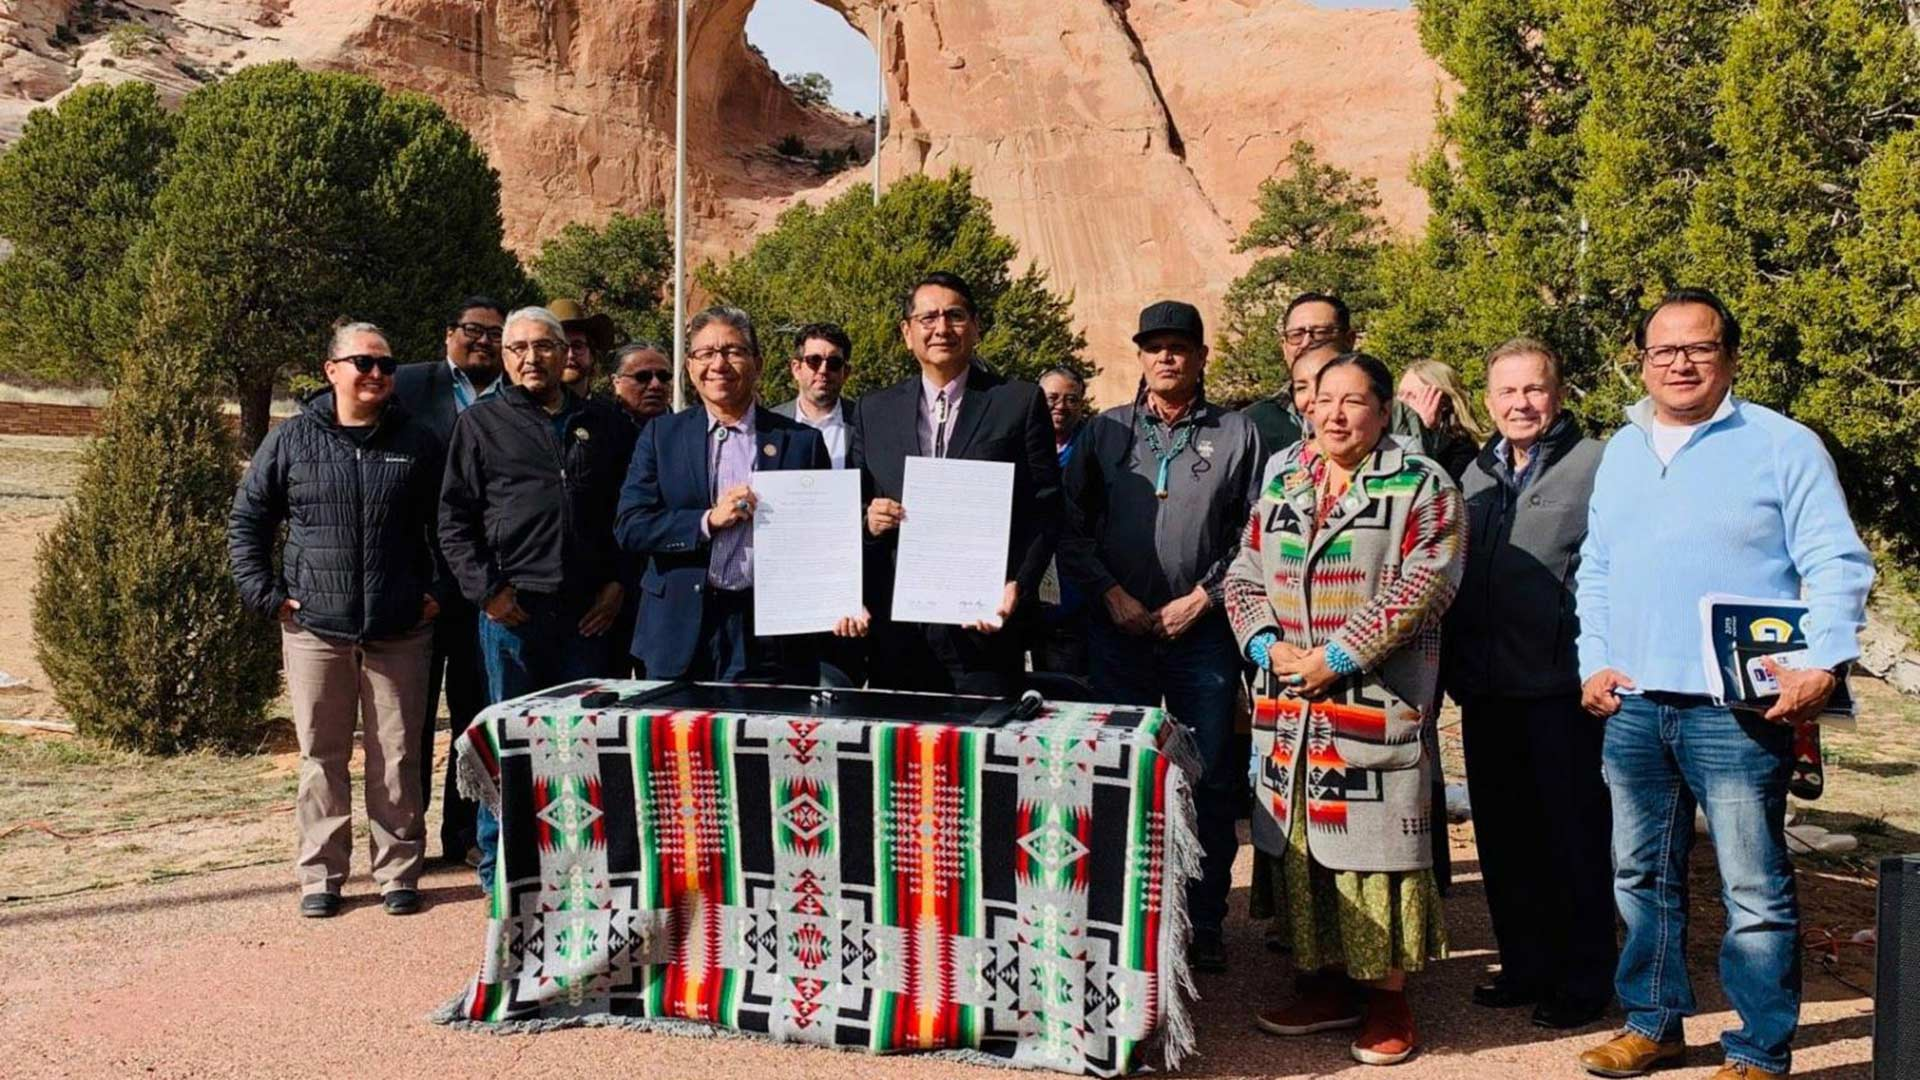 Navajo National Vice President Myron Lizer and President Jonathan Nez hold up the Navajo Sunrise Proclamation in Window Rock, the tribe's capital, on April 2, 2019.